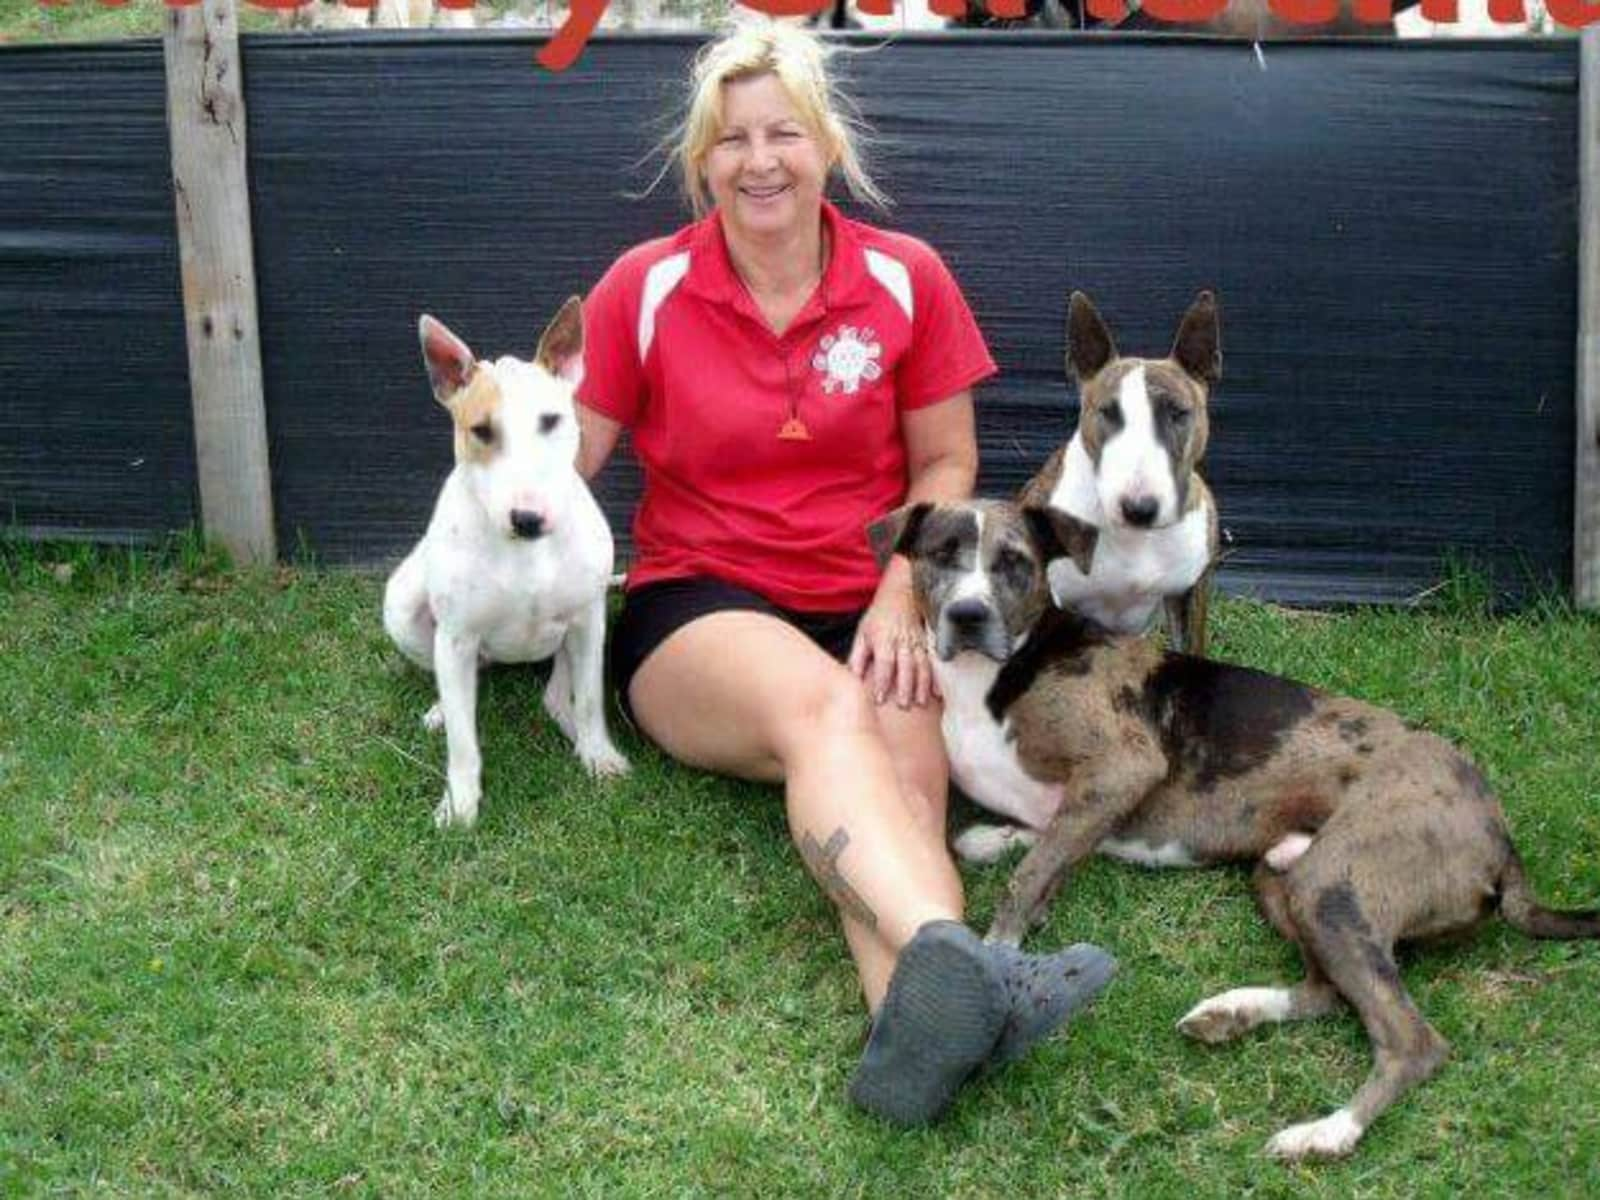 Tracey from Whangarei, New Zealand